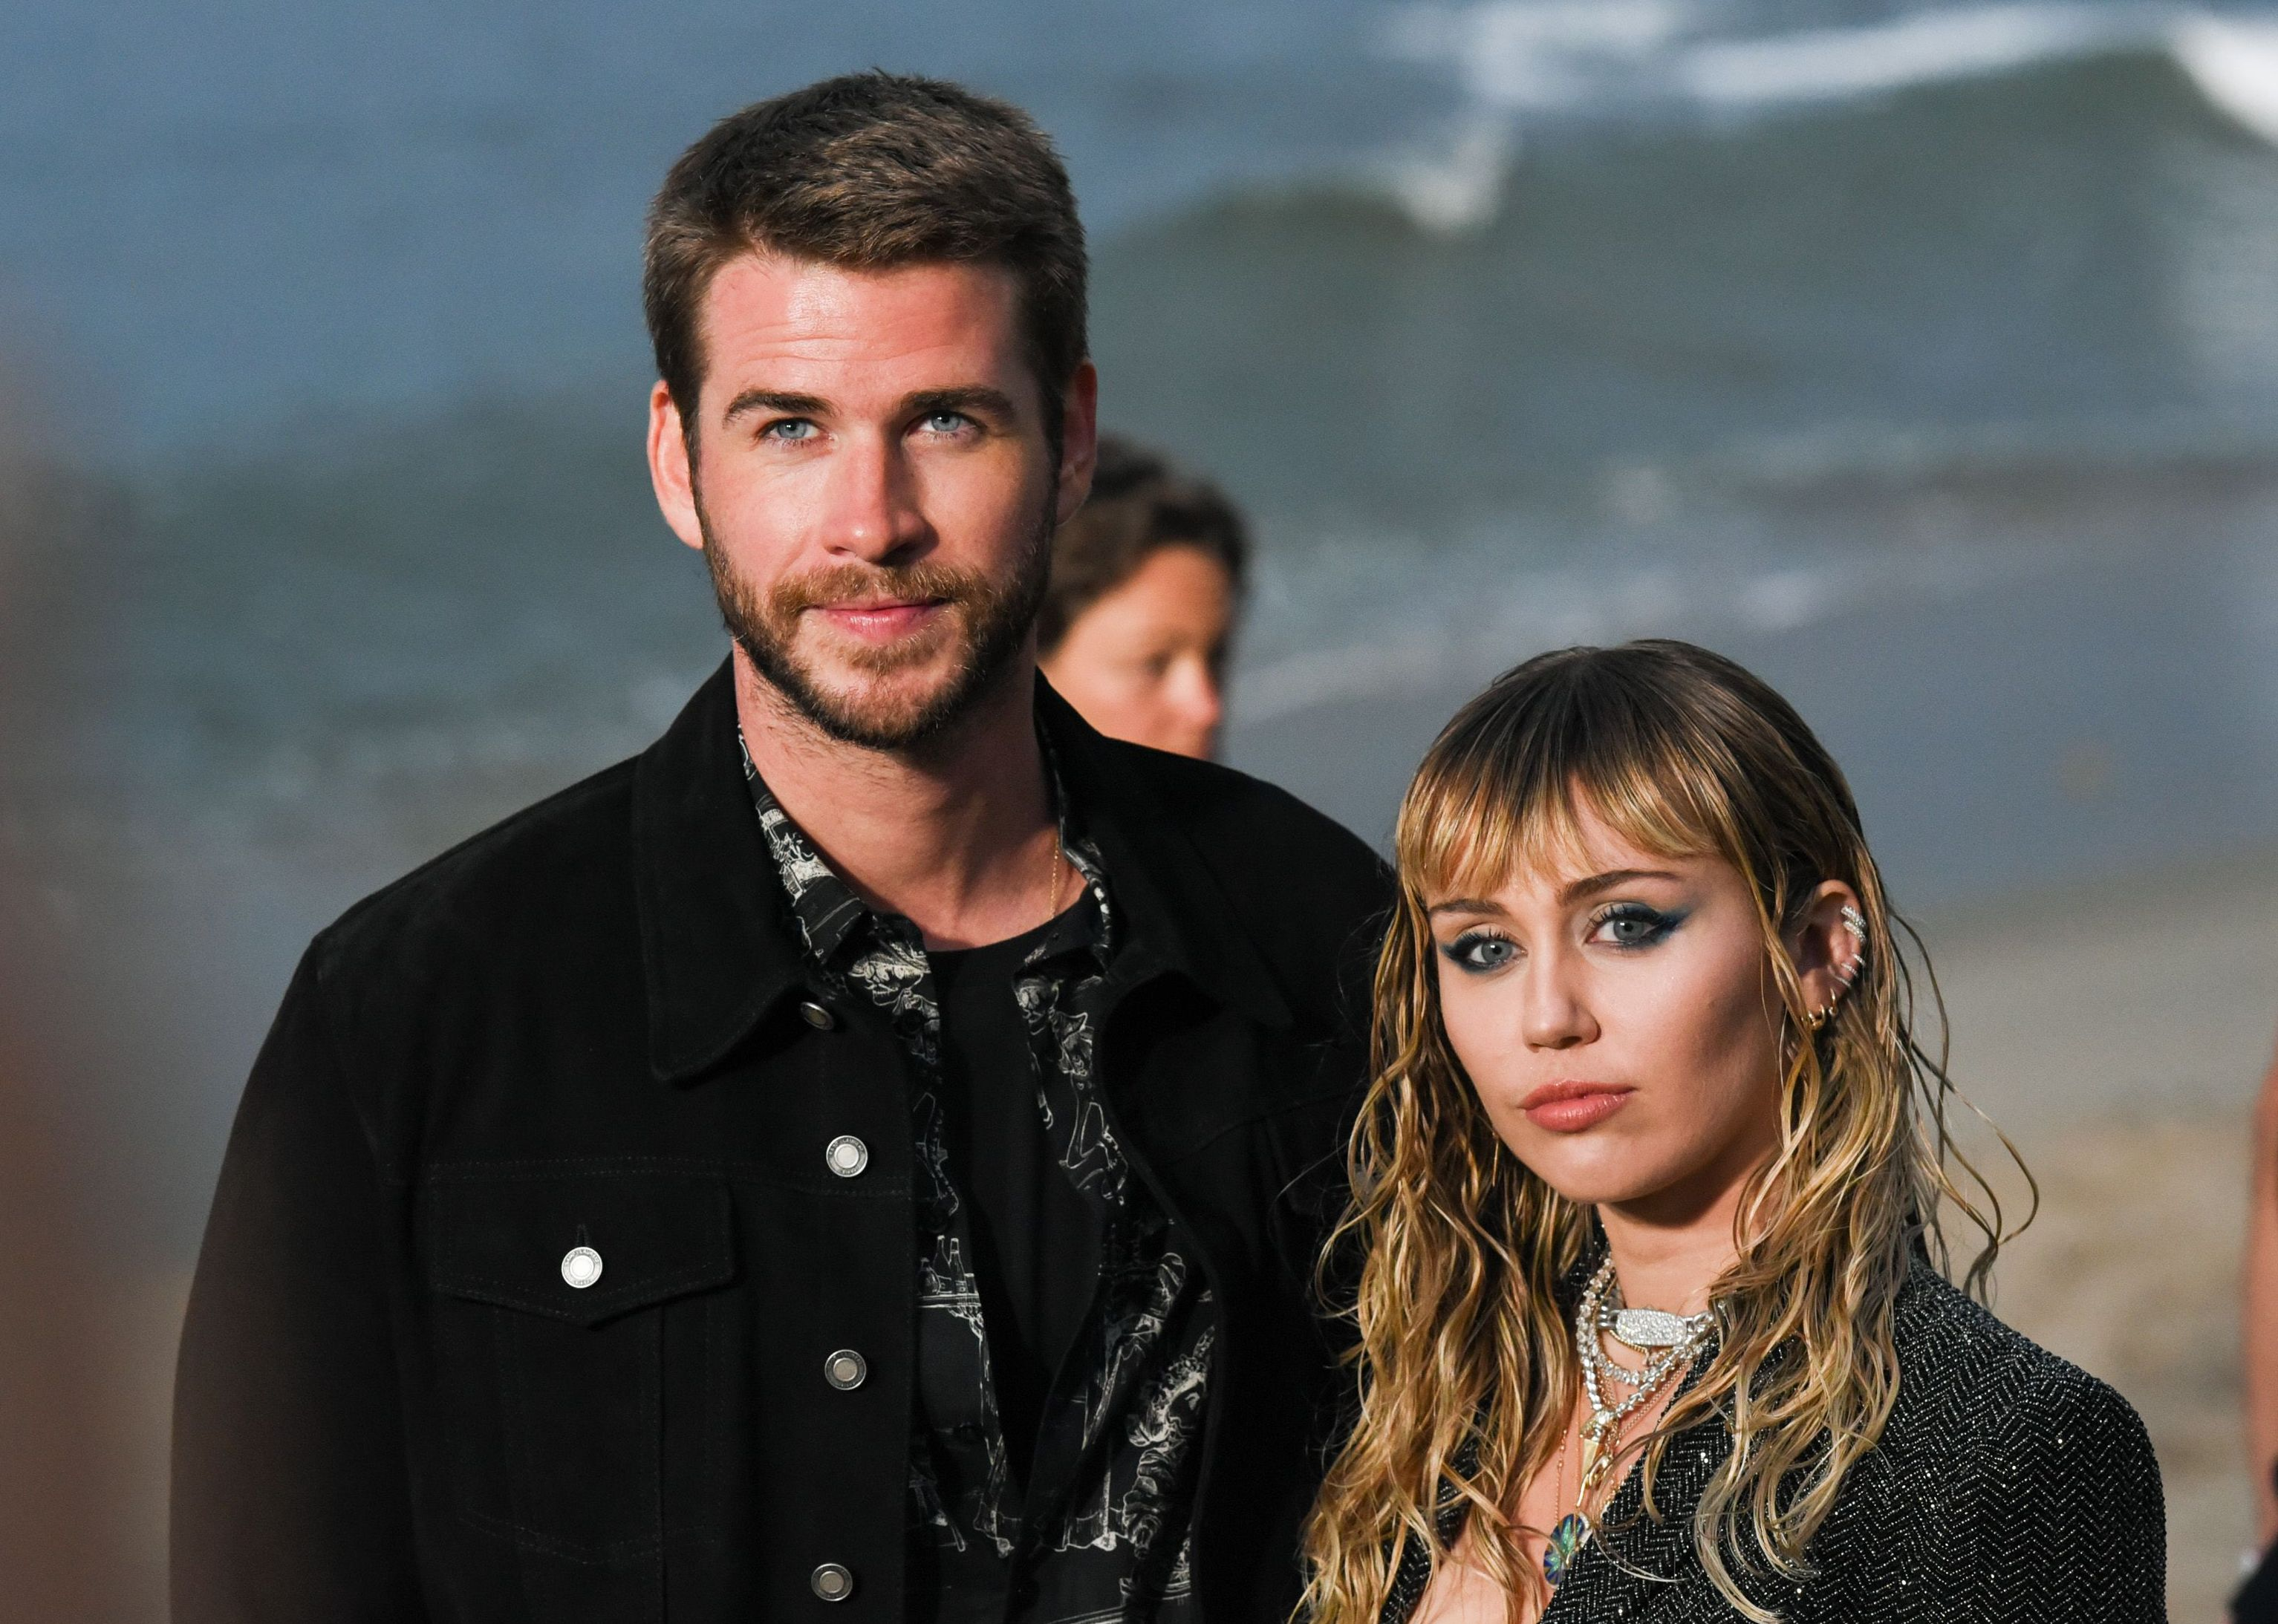 Miley Cyrus had a long and complicated relationship with Liam Hemsworth.